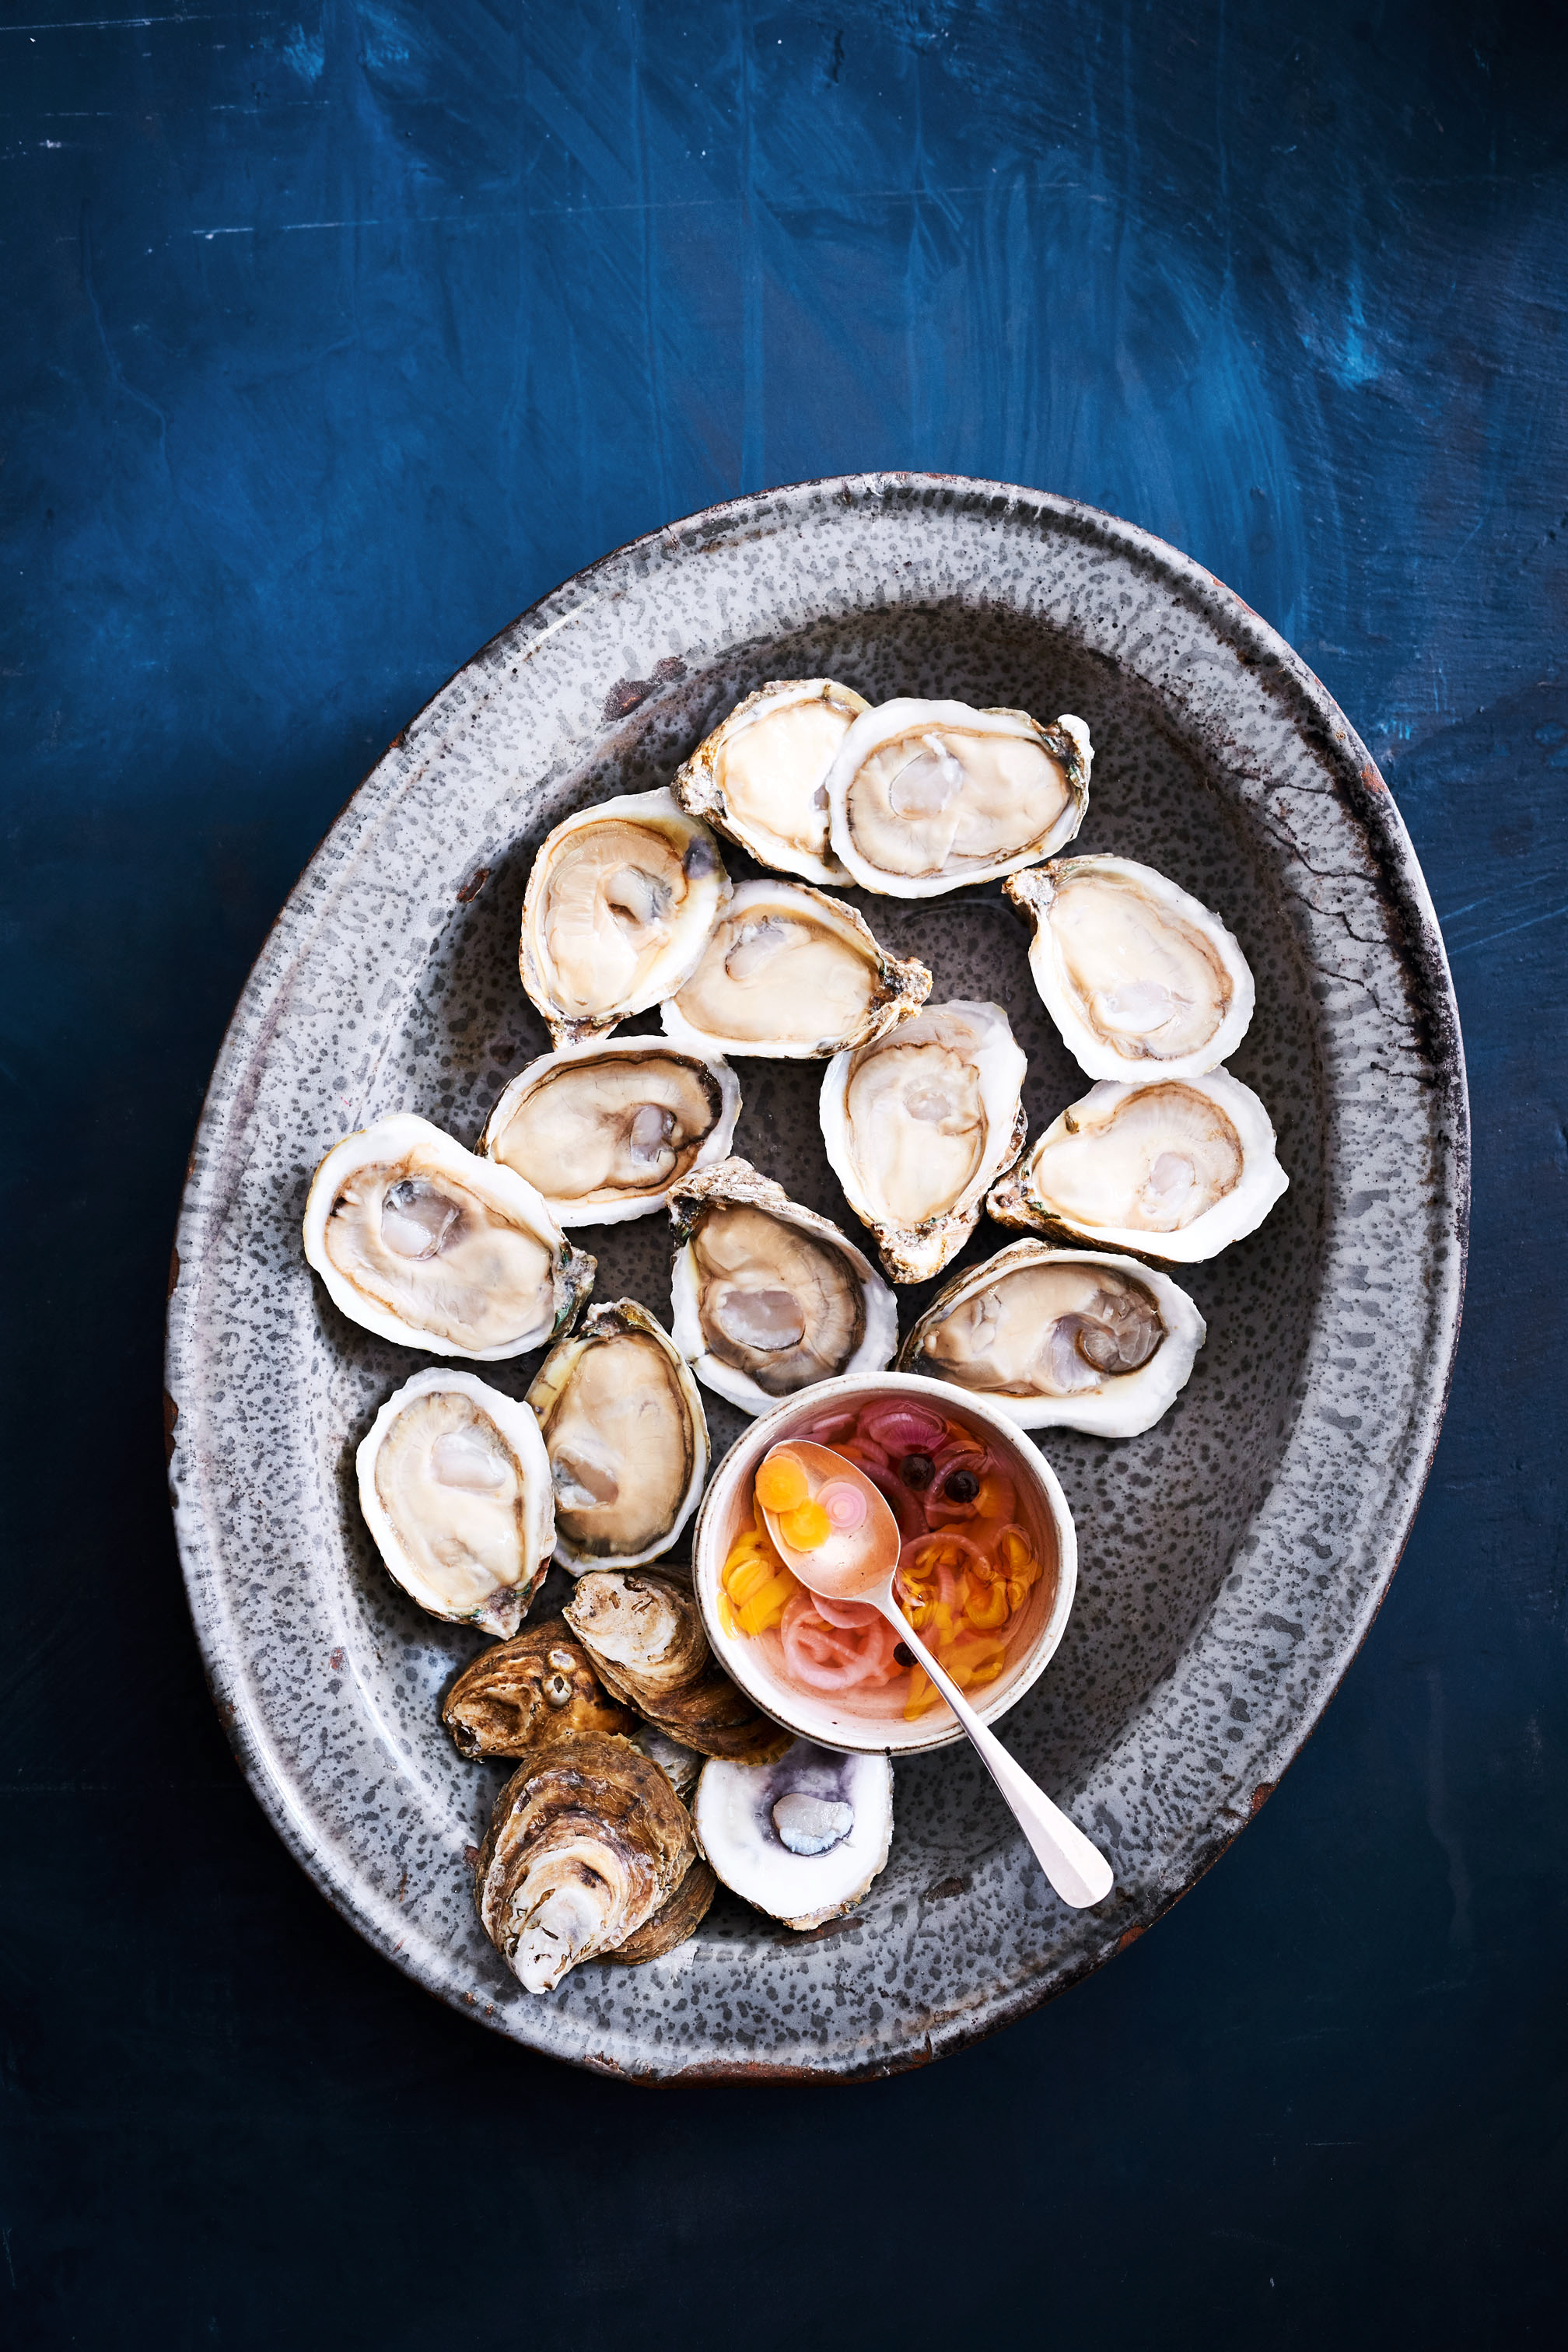 How to Buy, Store, and Shuck Oysters